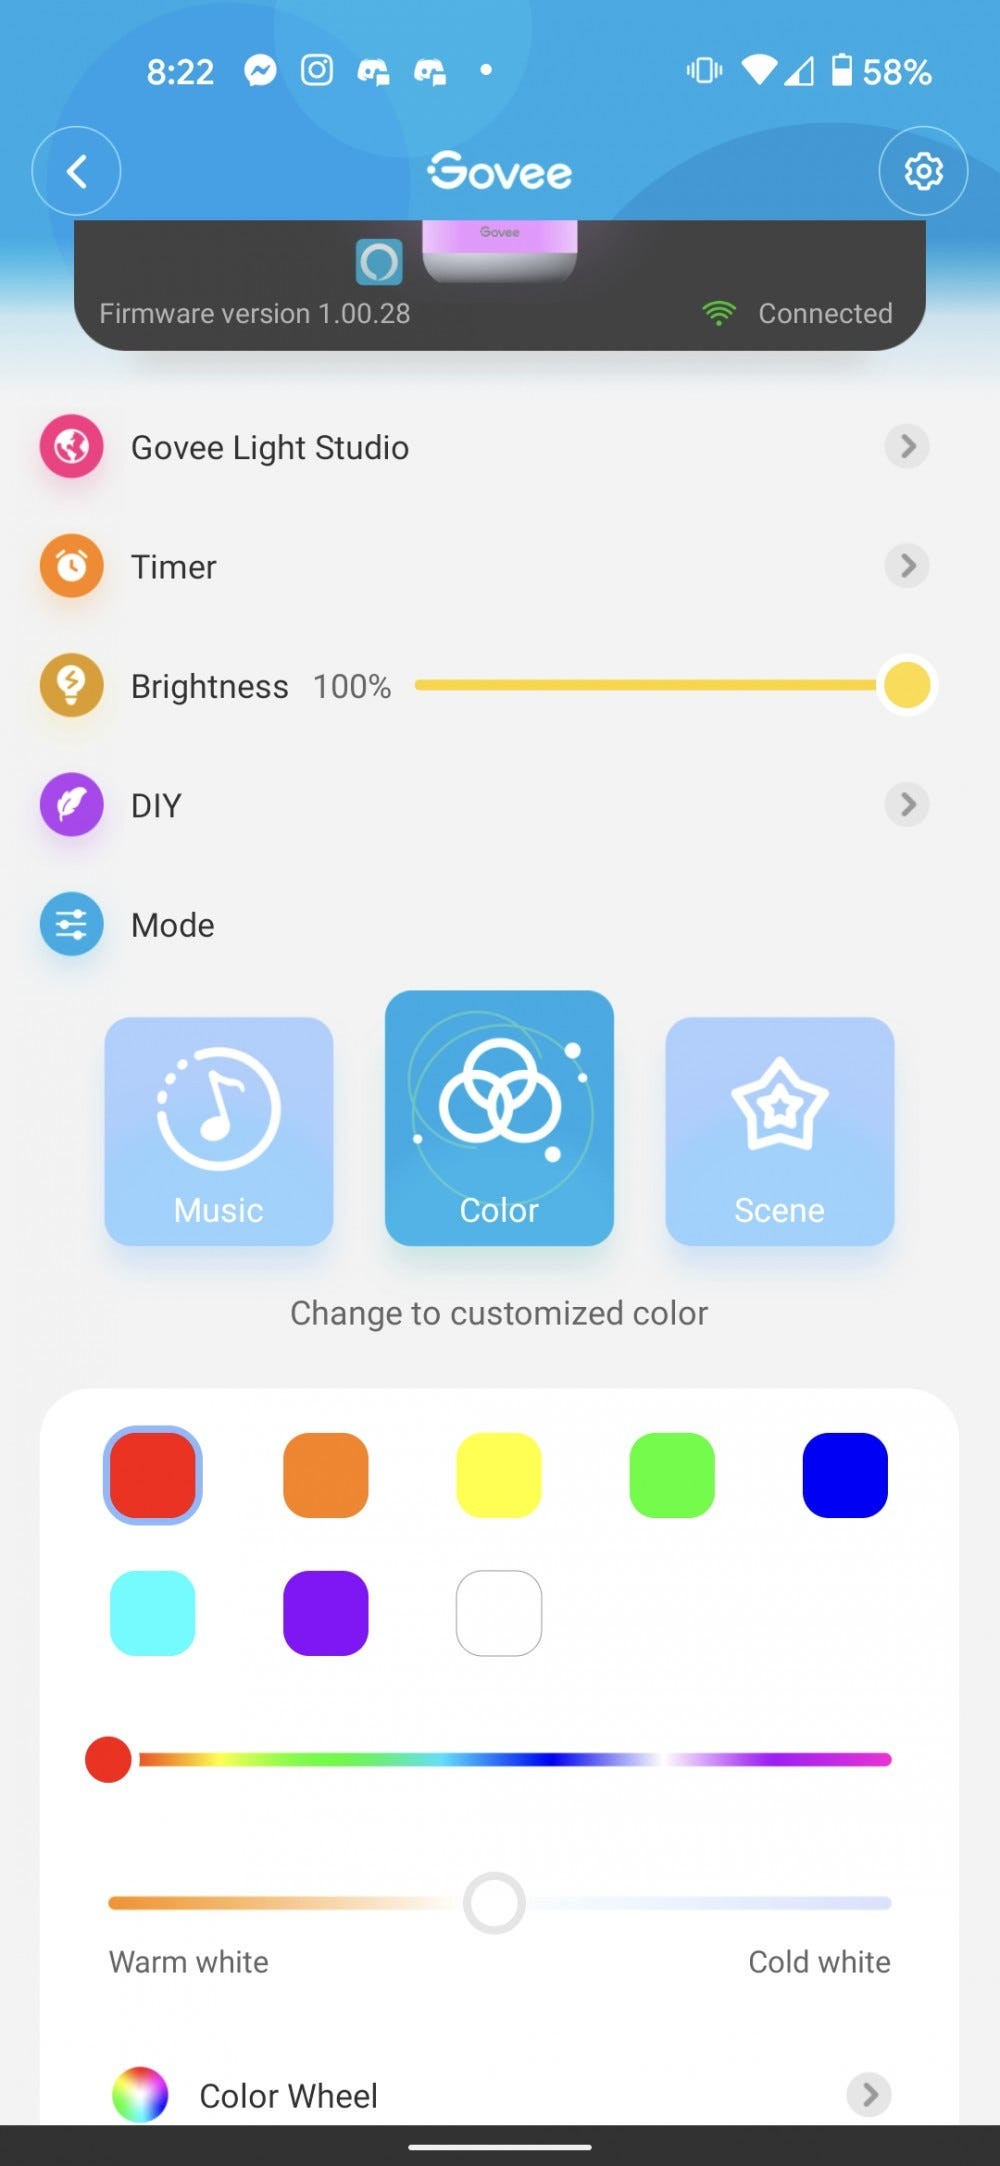 The Govee app showing the solid color option for the Aura Lamp